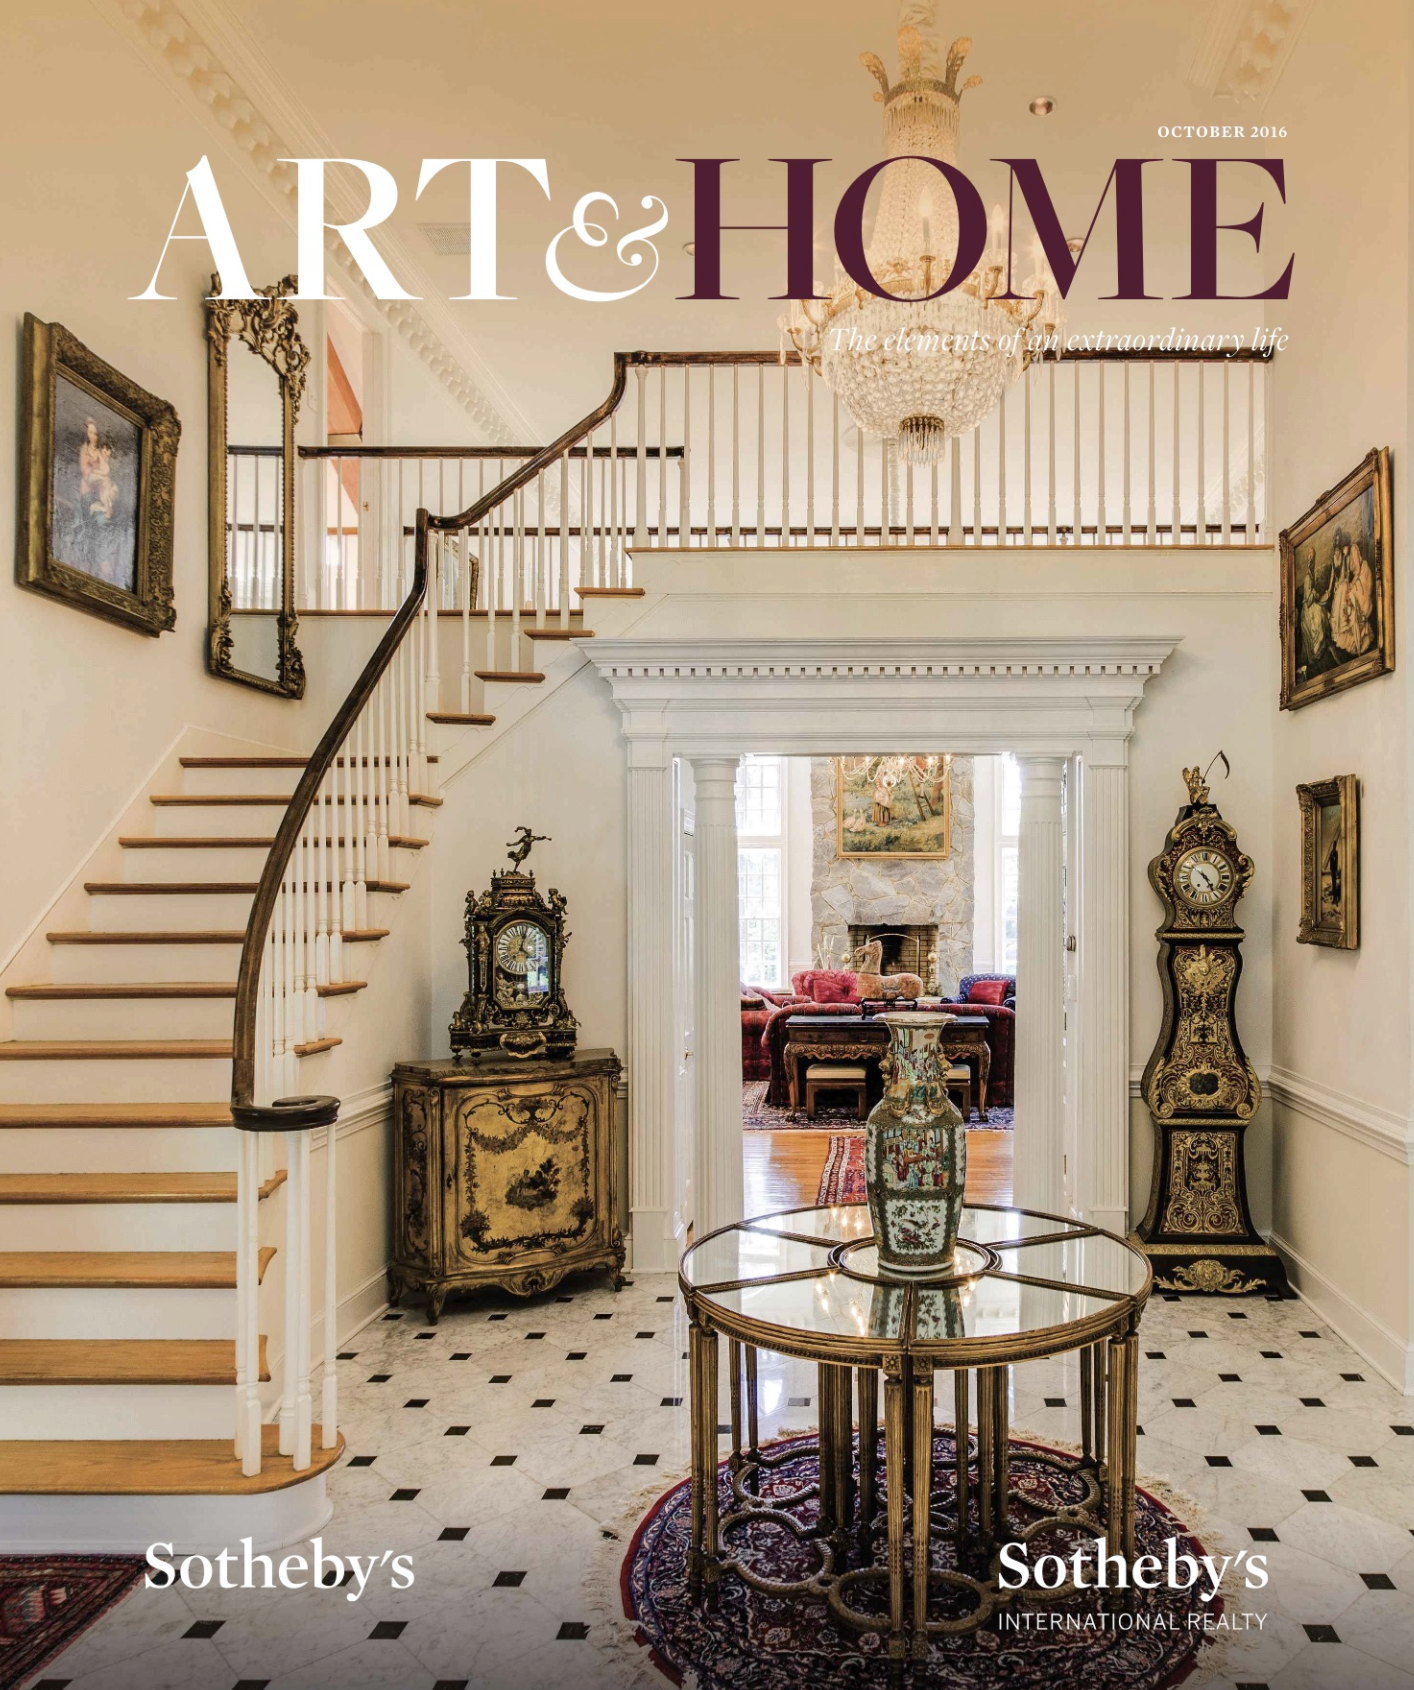 Sotheby's Art & Home Magazine